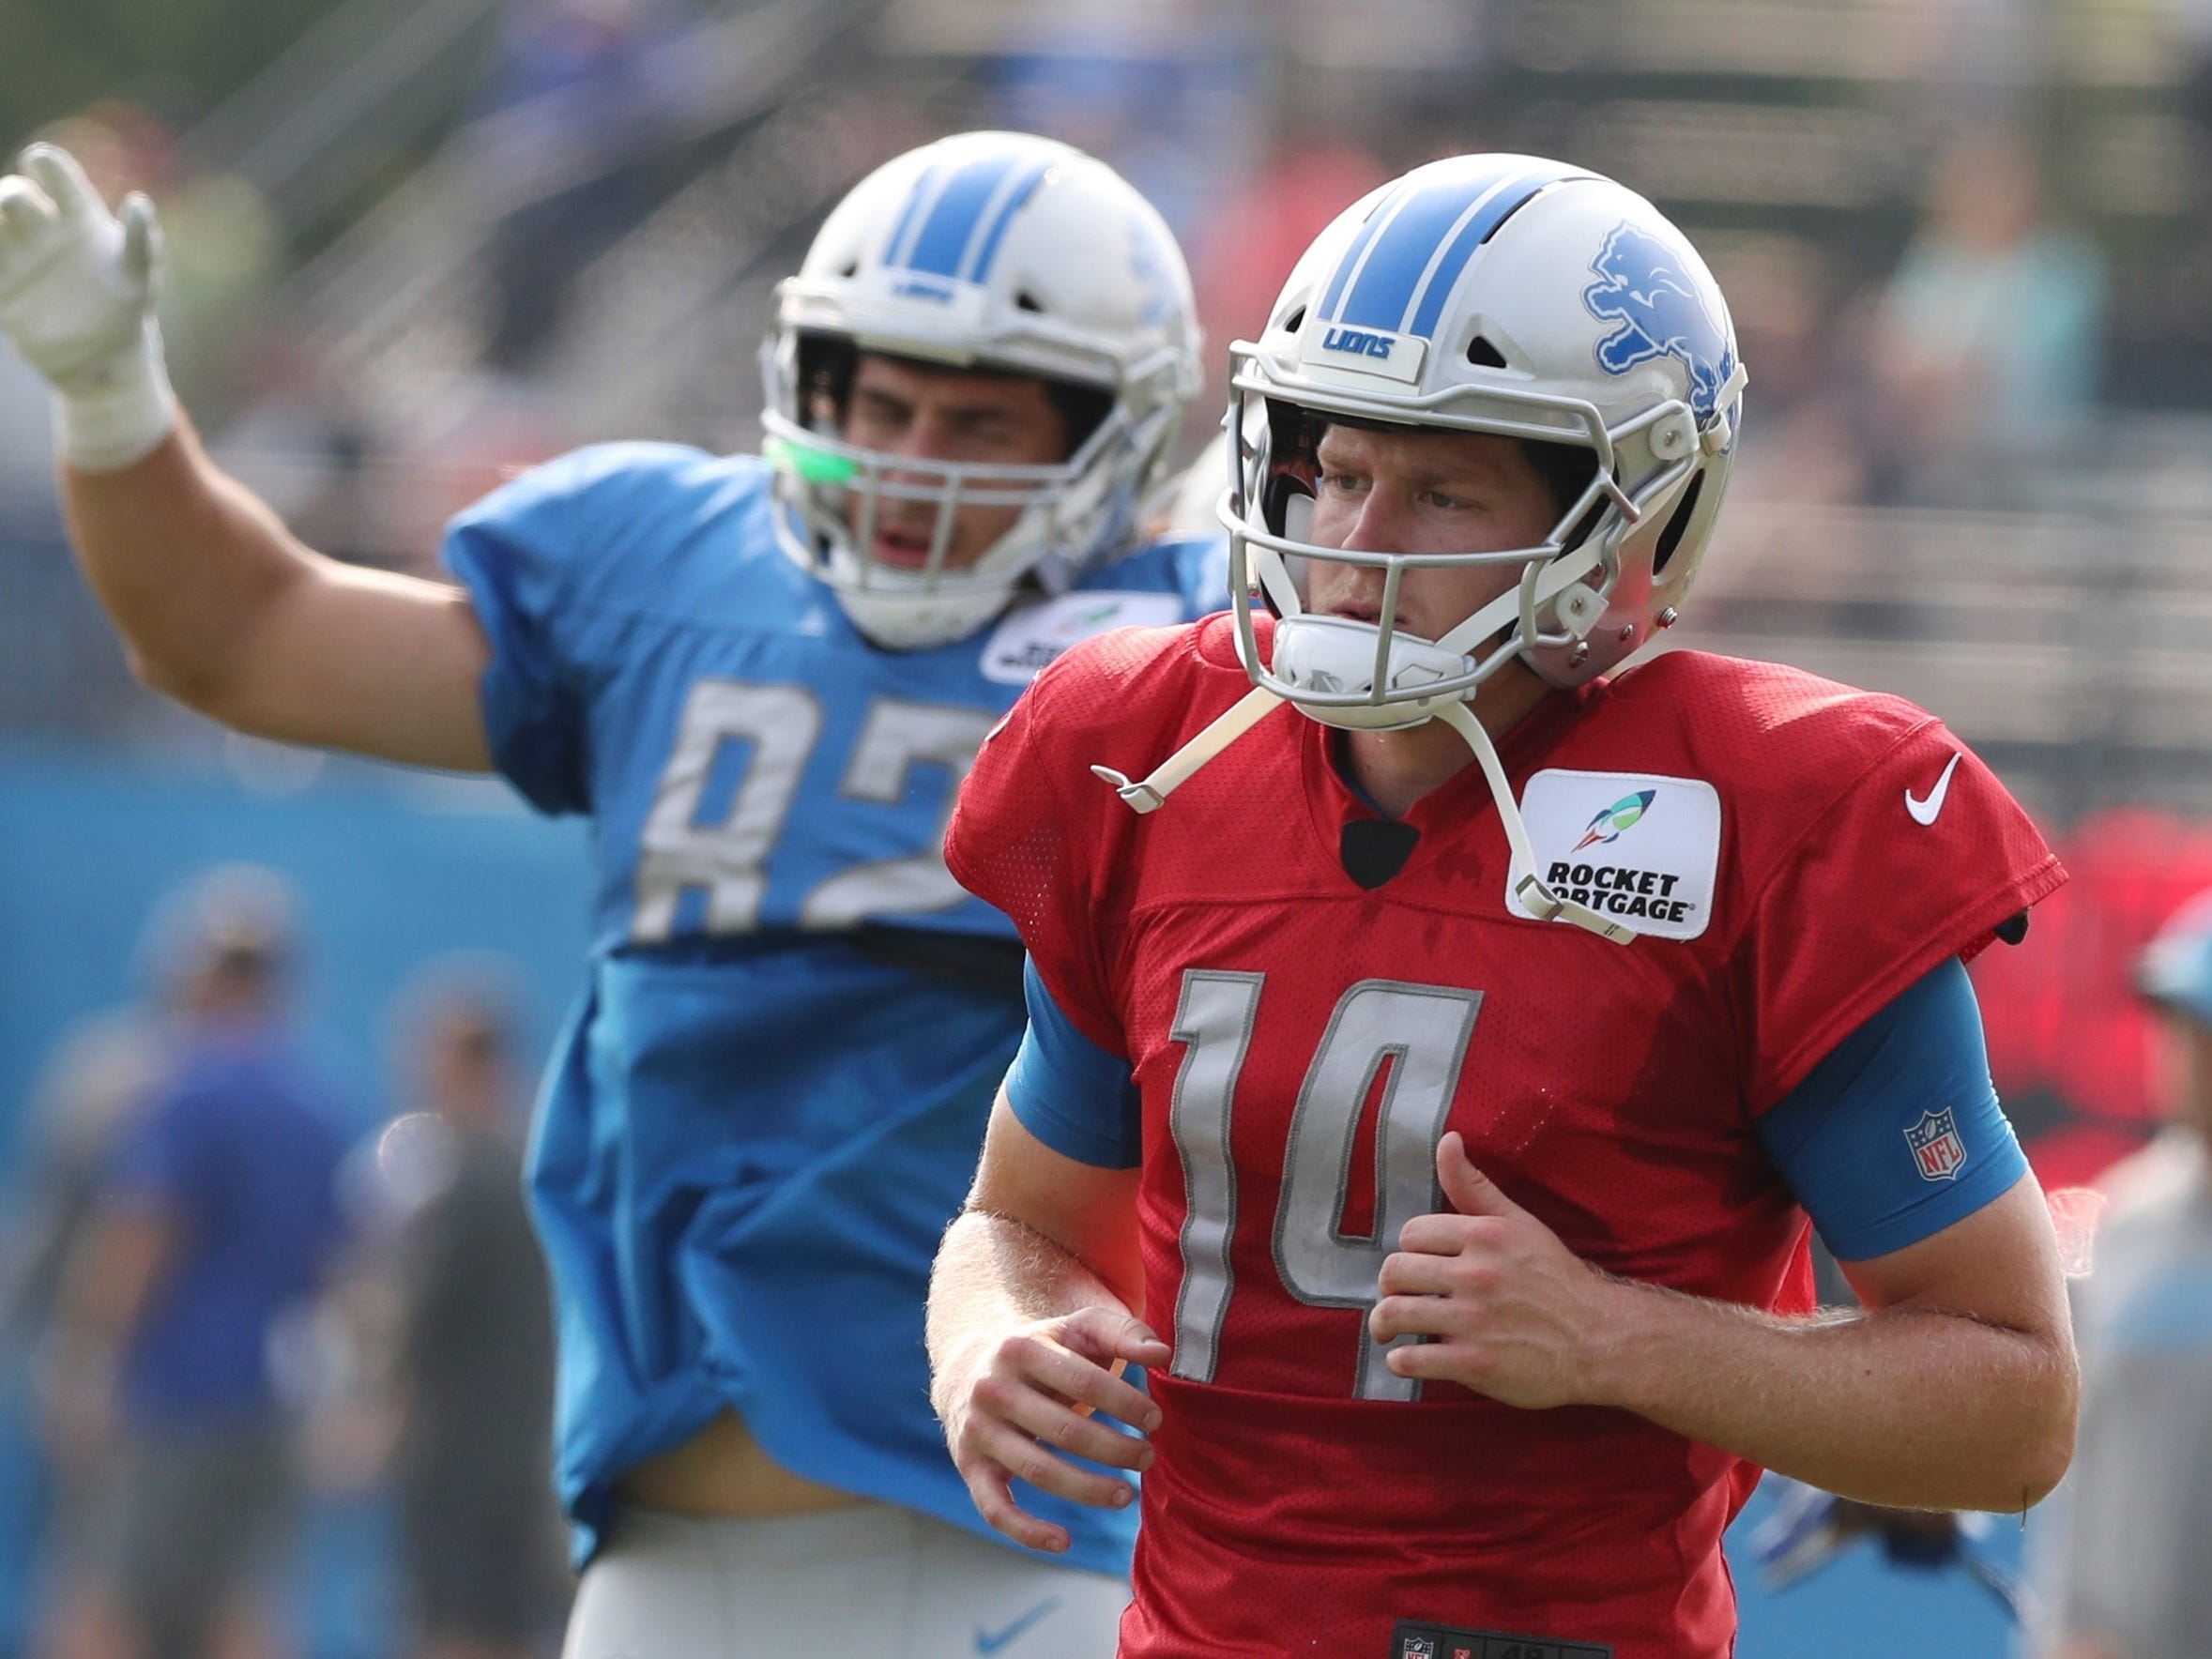 Detroit Lions quarterback Jake Rudock warms up before drills at the team's football camp.